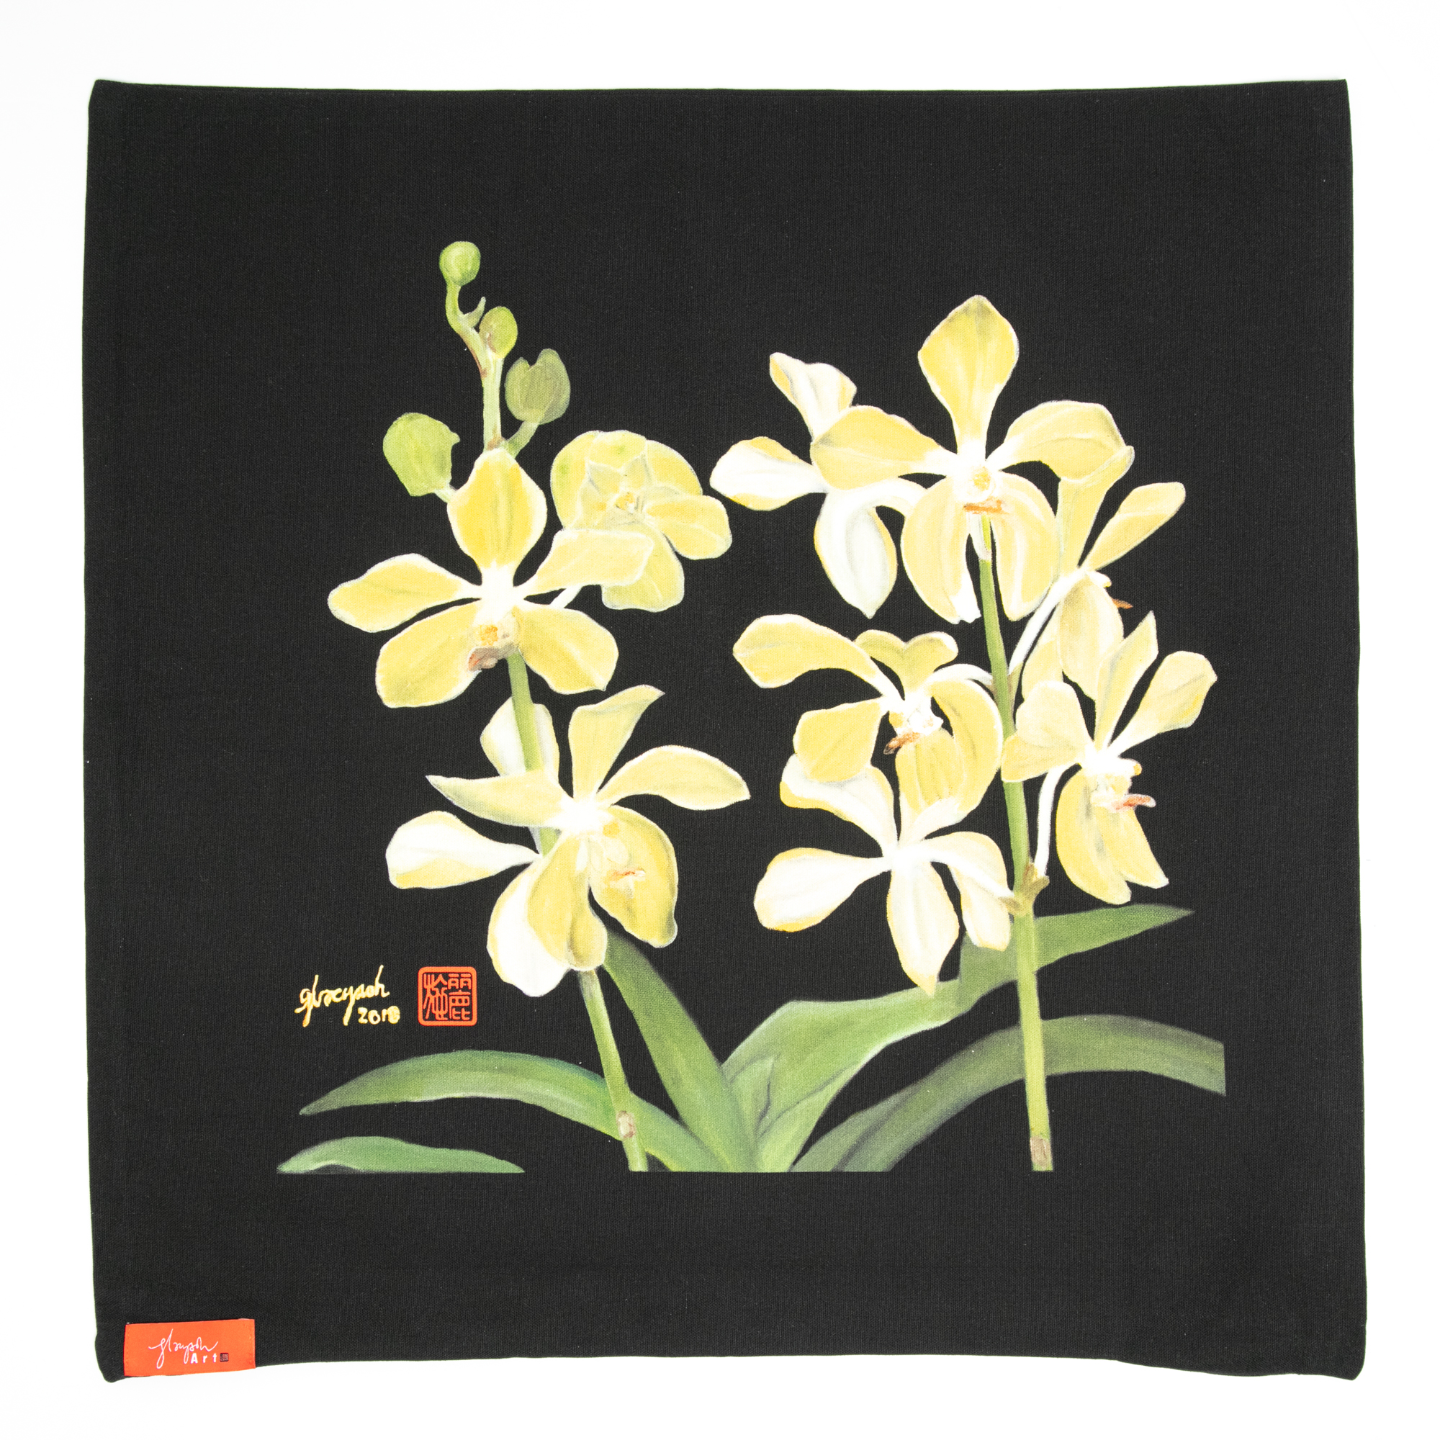 SOS 5 Orchids Cushion Cover - Aranda Lee Kuan Yew